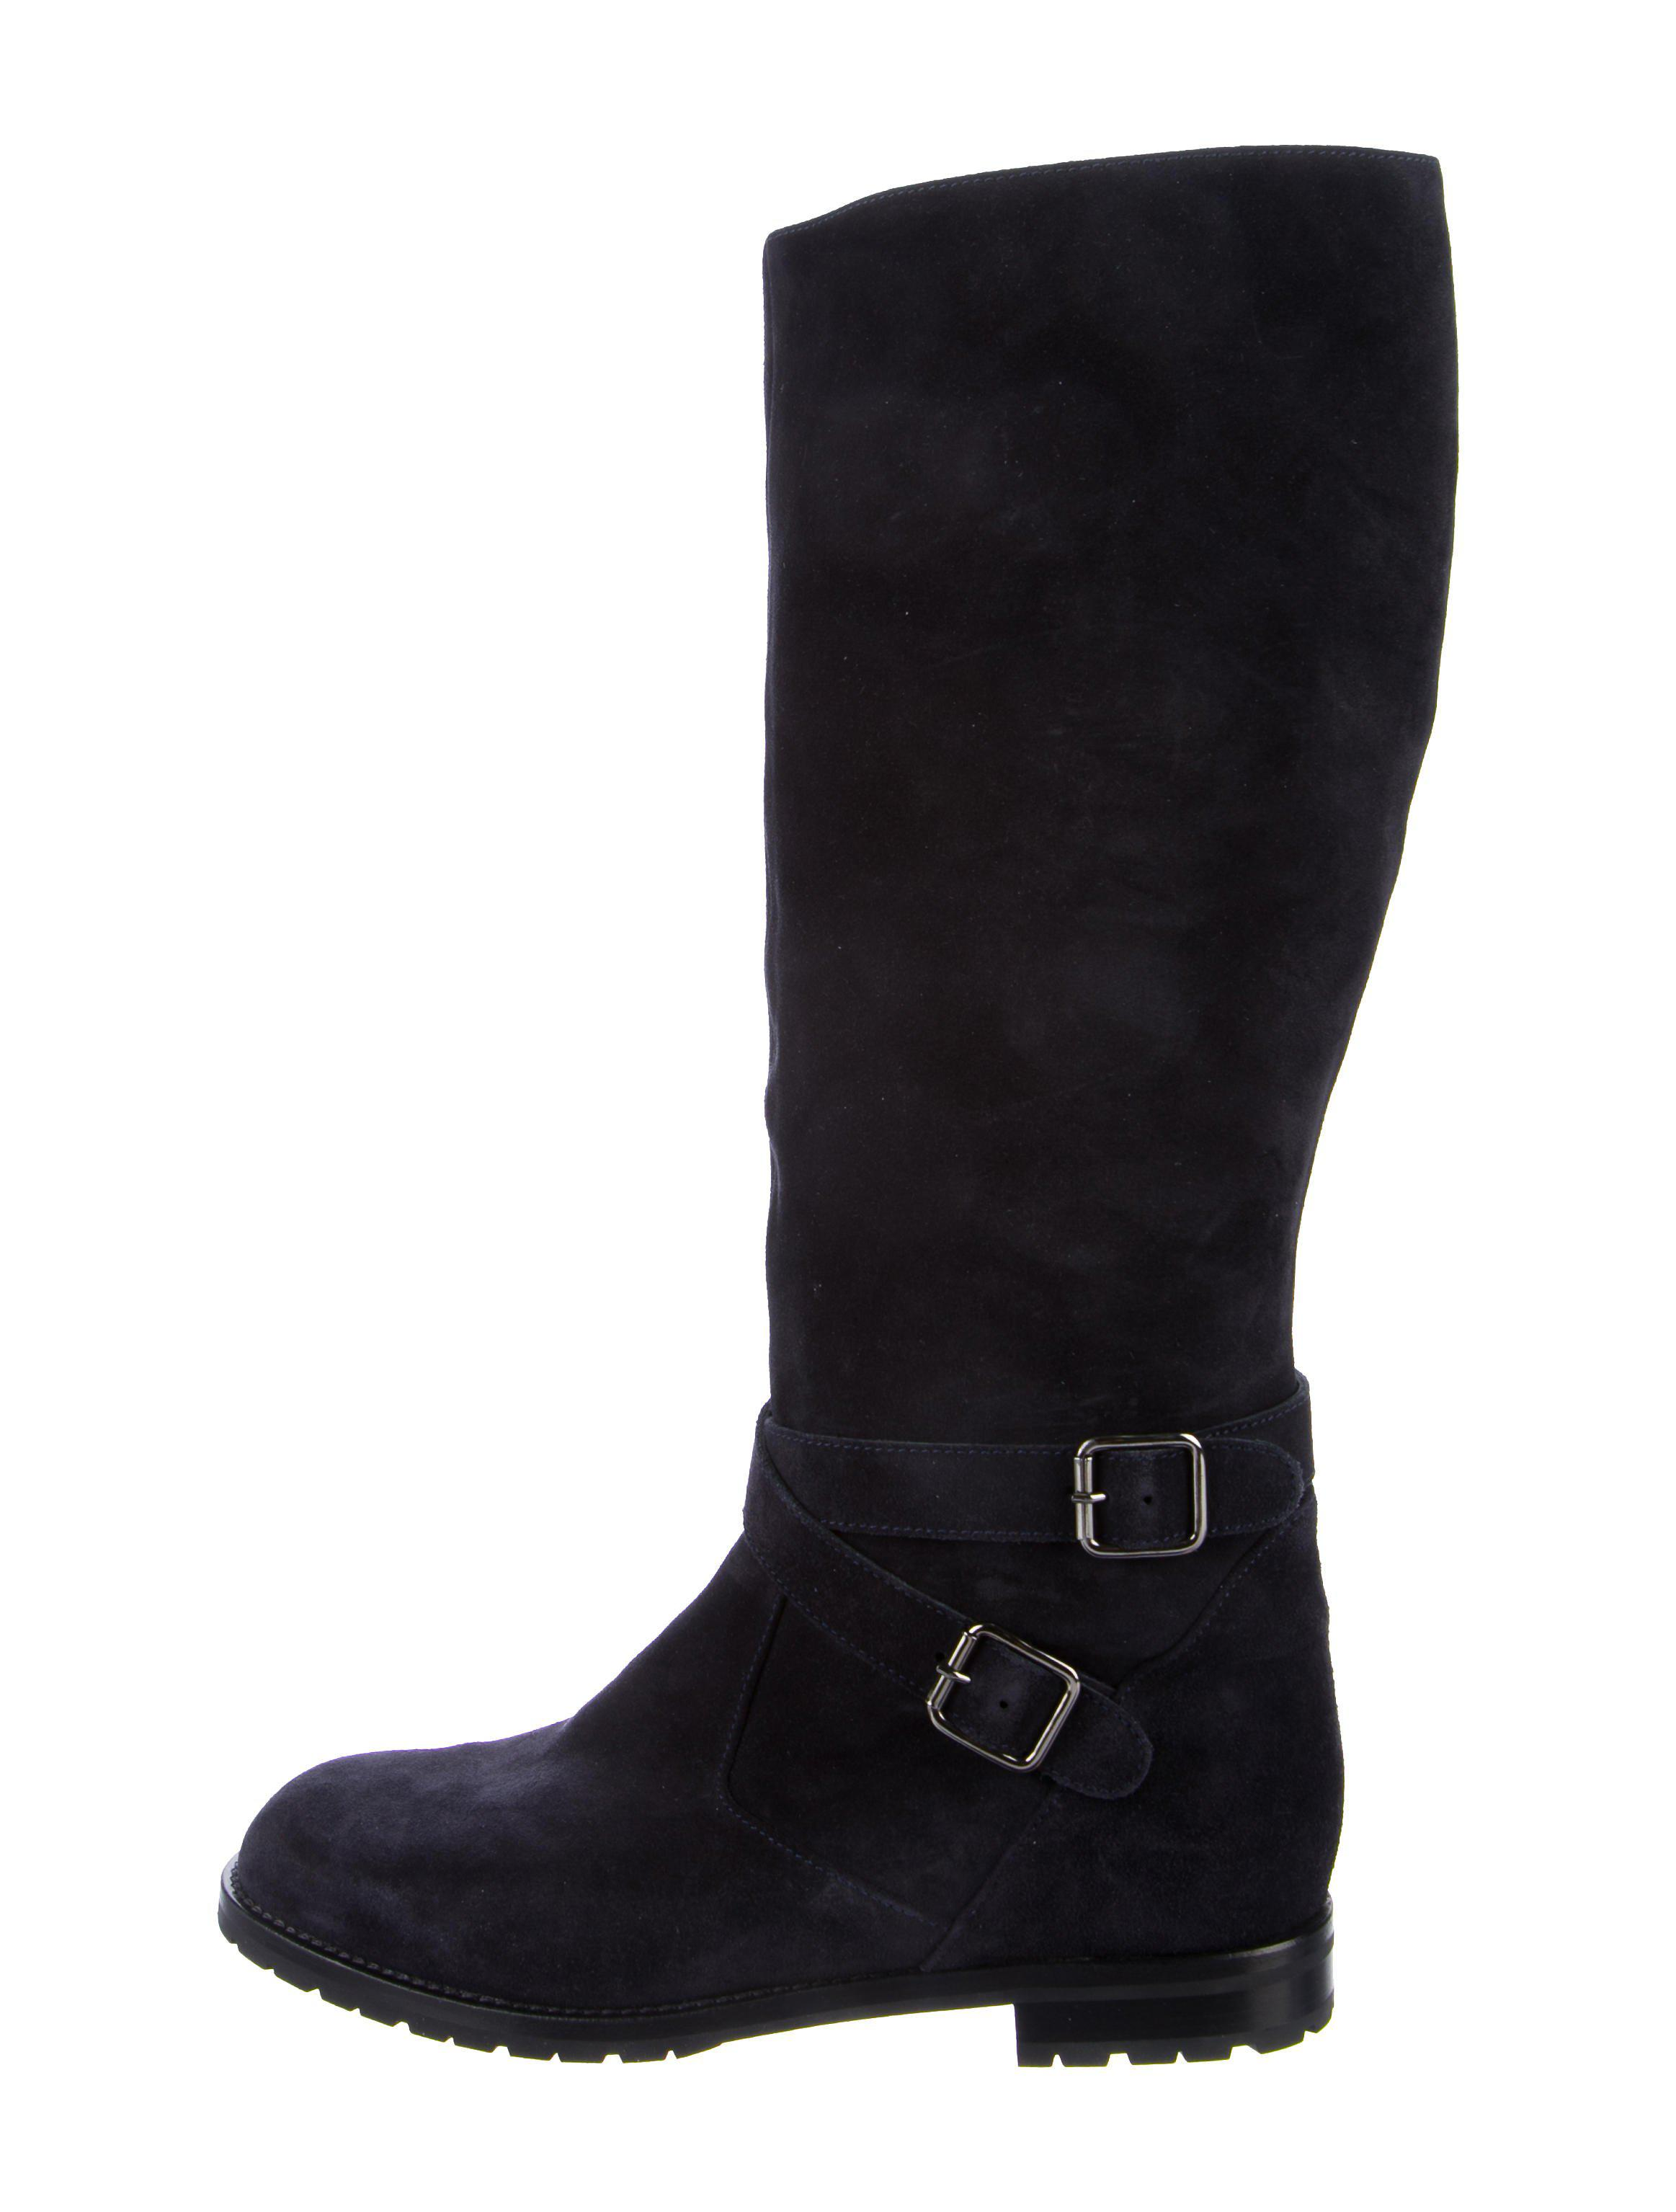 official site cheap online Manolo Blahnik Campocross Knee-High Boots comfortable online zMiaH2YTWi